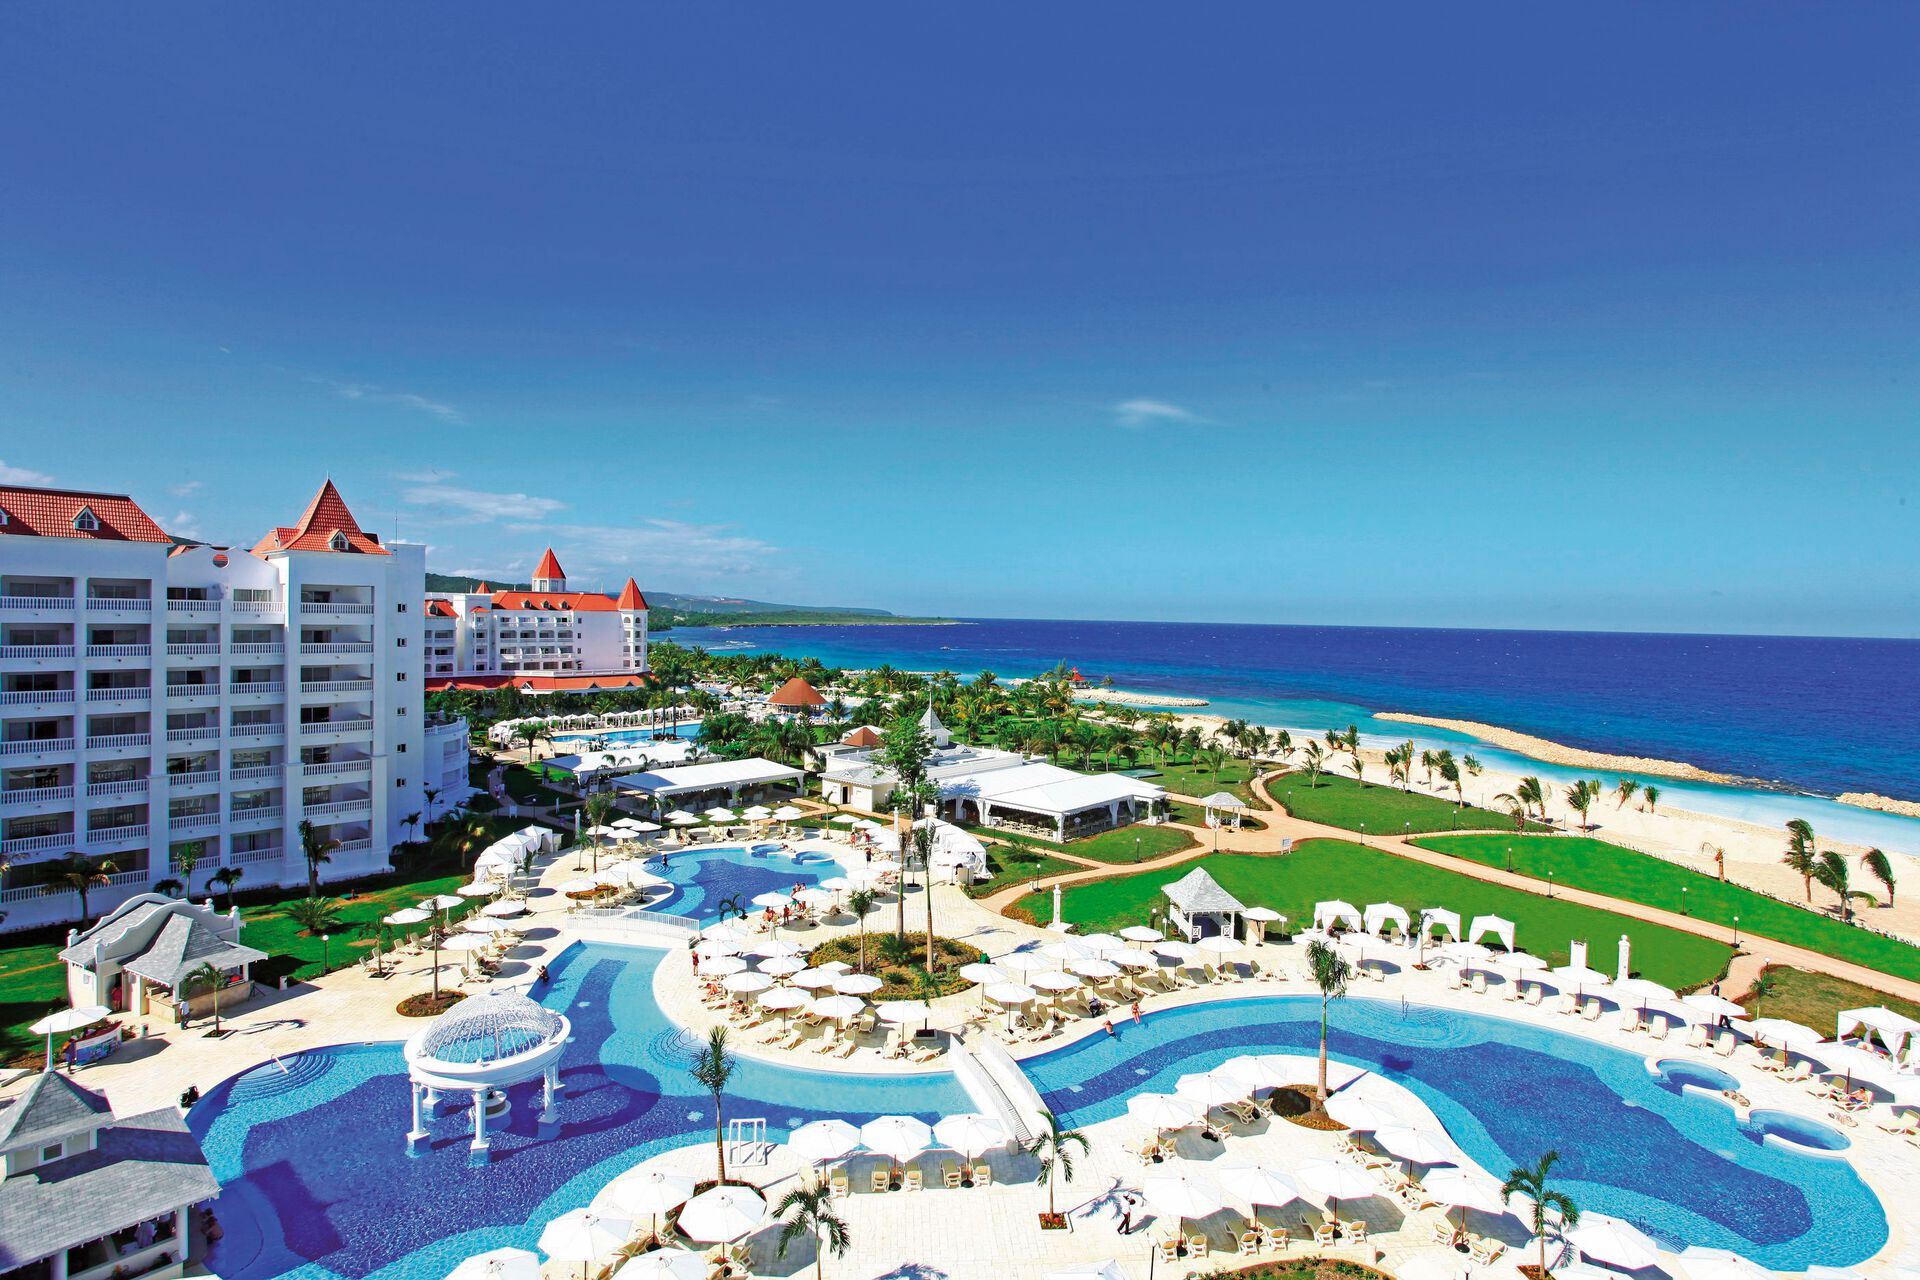 Bahia Principe Luxury Runaway Bay (- Adult Only) - 5*